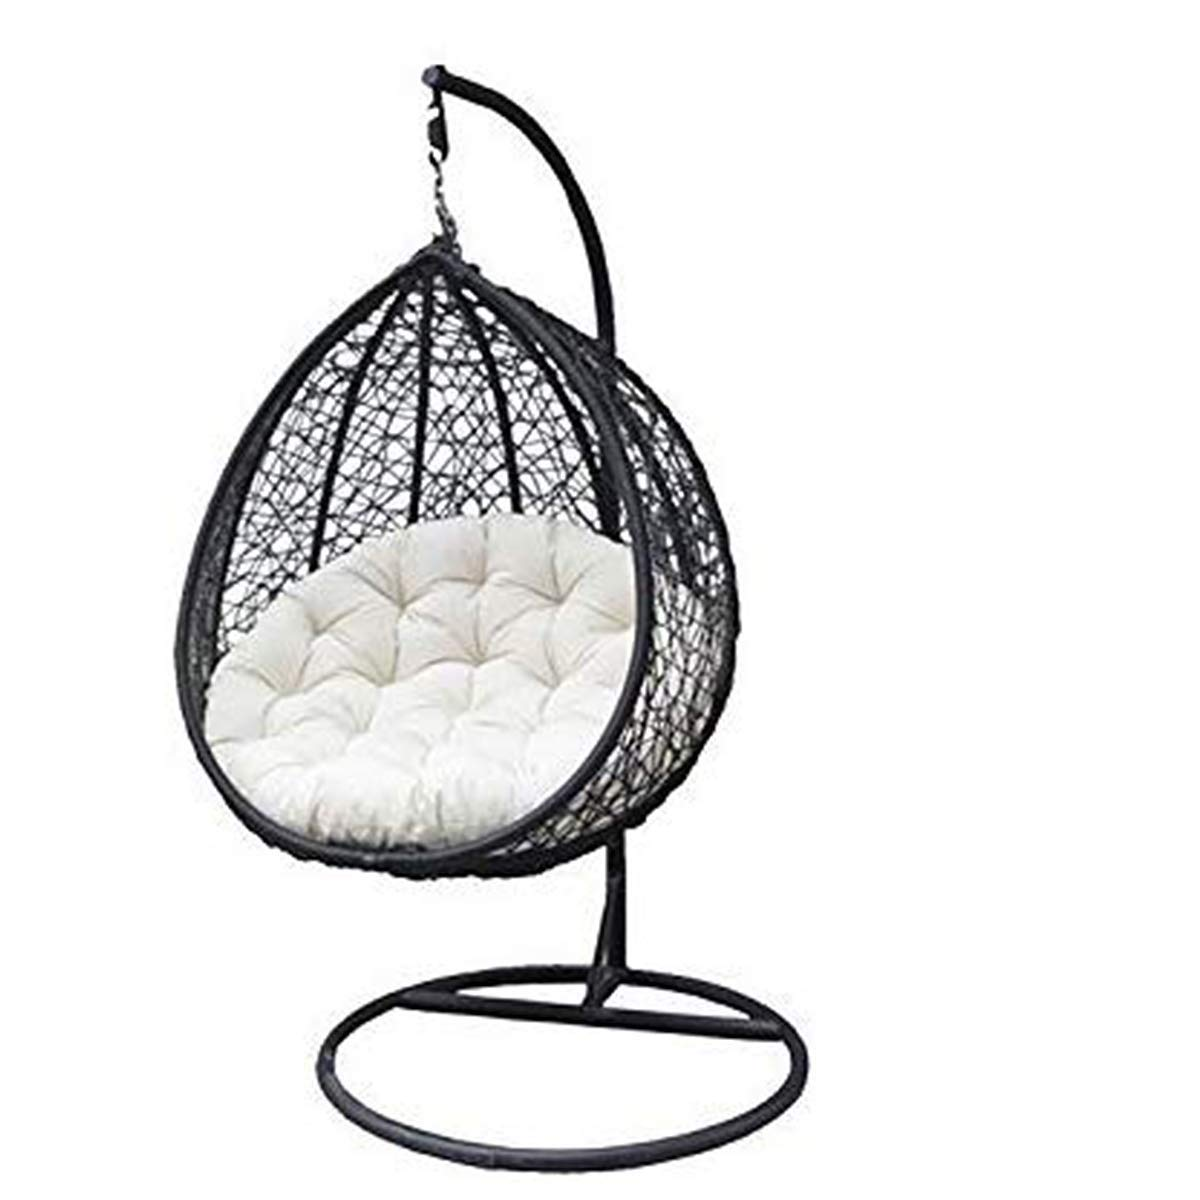 Carry Bird Swing Chair With Stand Cushion Hook Color Black For 1outdoor Indoor Balcony Garden Patio Amazon In Electronics